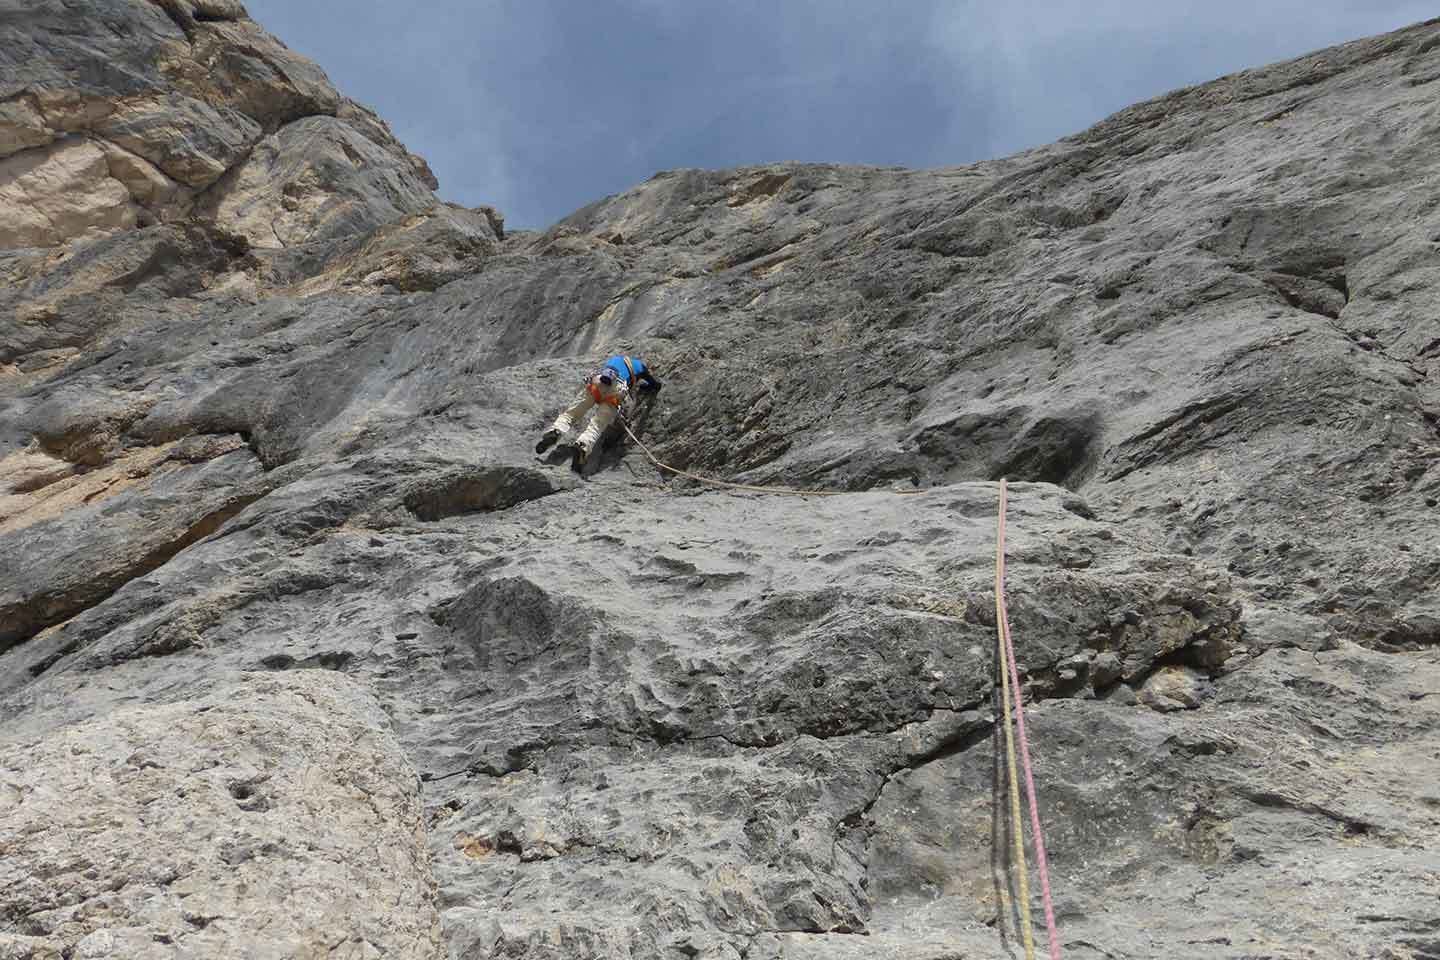 Tempi Moderni Climbing Route in Marmolada - Bruno Pederiva Mountain Guide